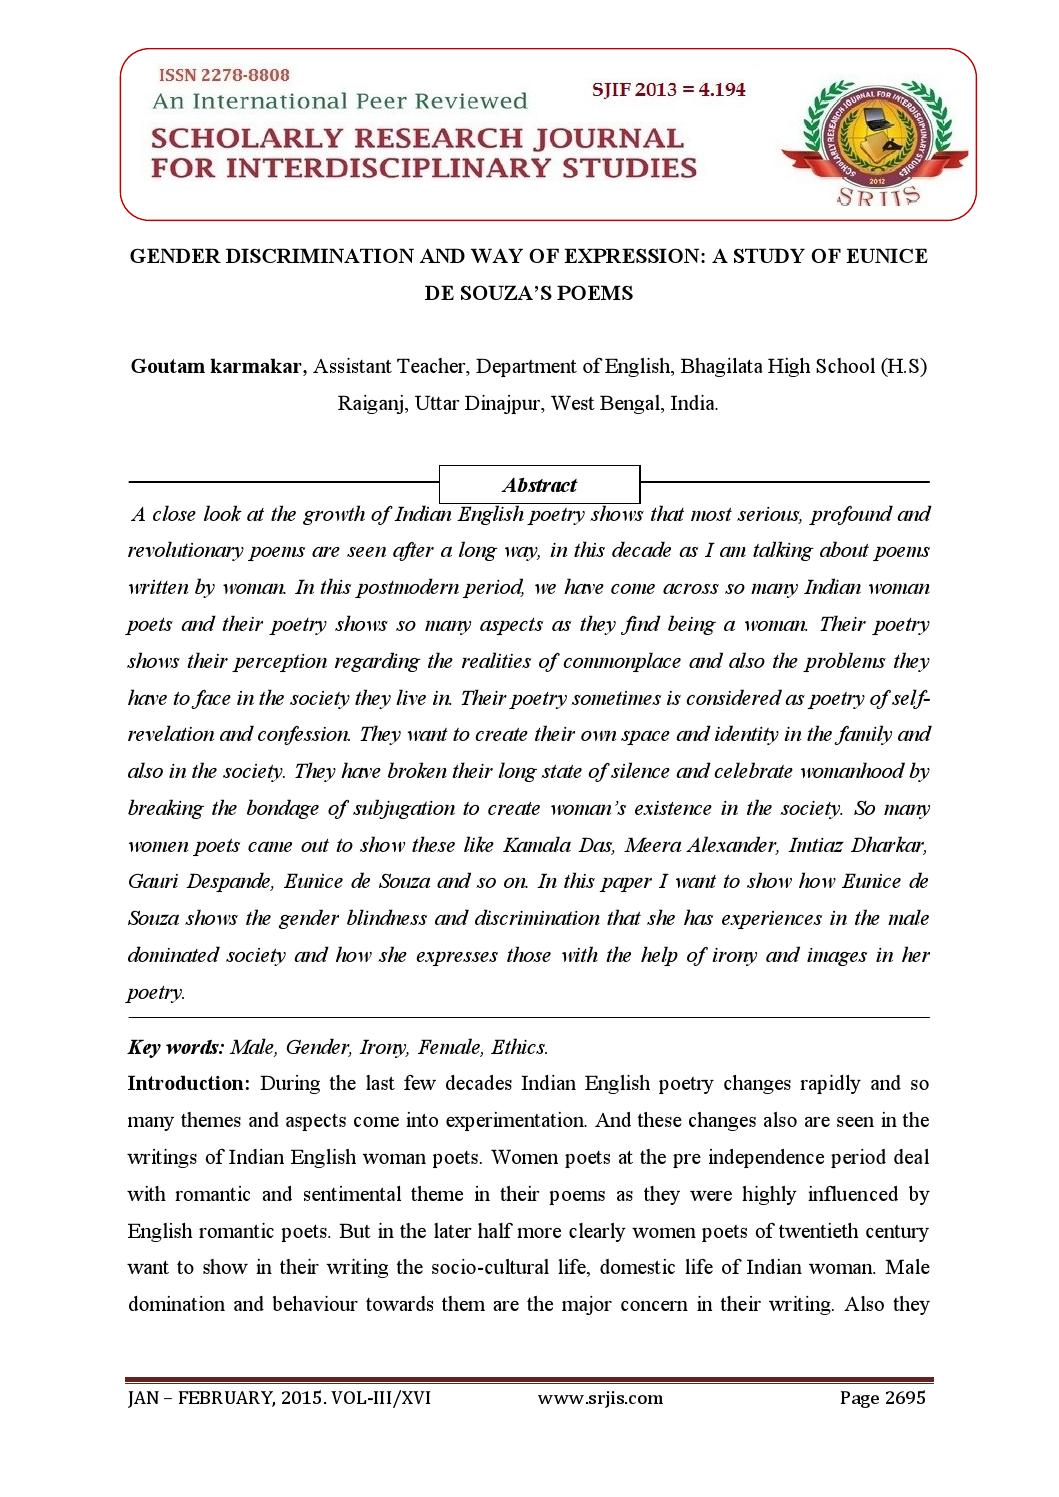 GENDER DISCRIMINATION AND WAY OF EXPRESSION: A STUDY OF EUNICE DE SOUZA'S  POEMS